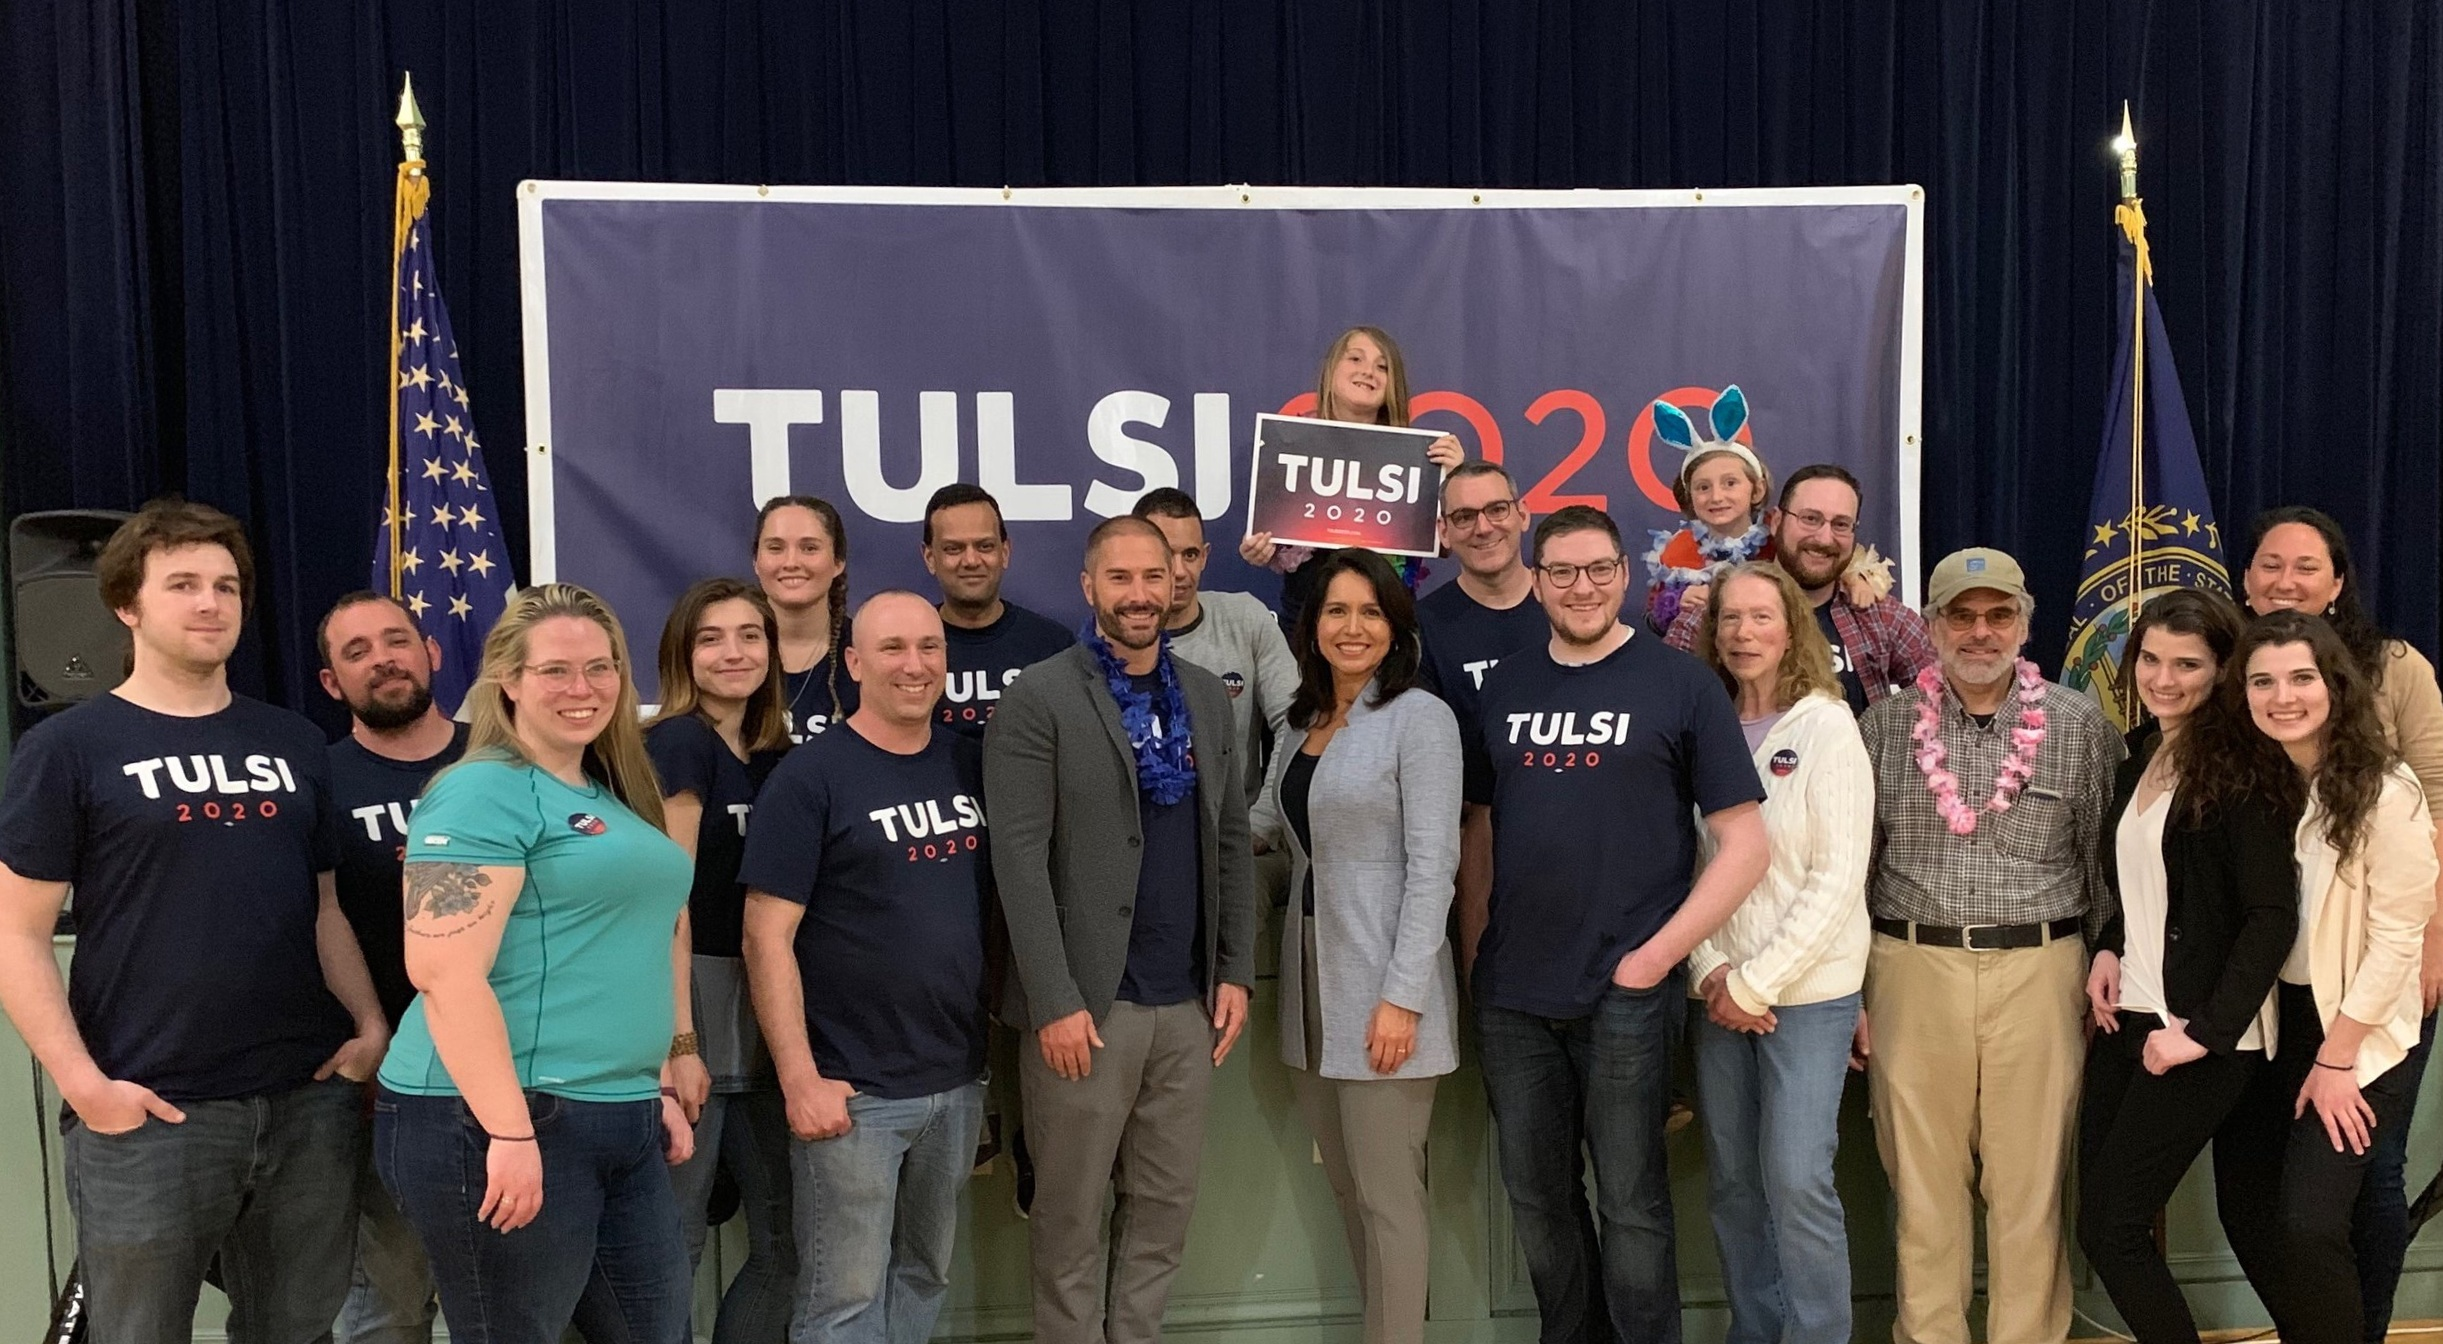 Group photo of volunteers with Tulsi after town hall event in Exeter, NH.